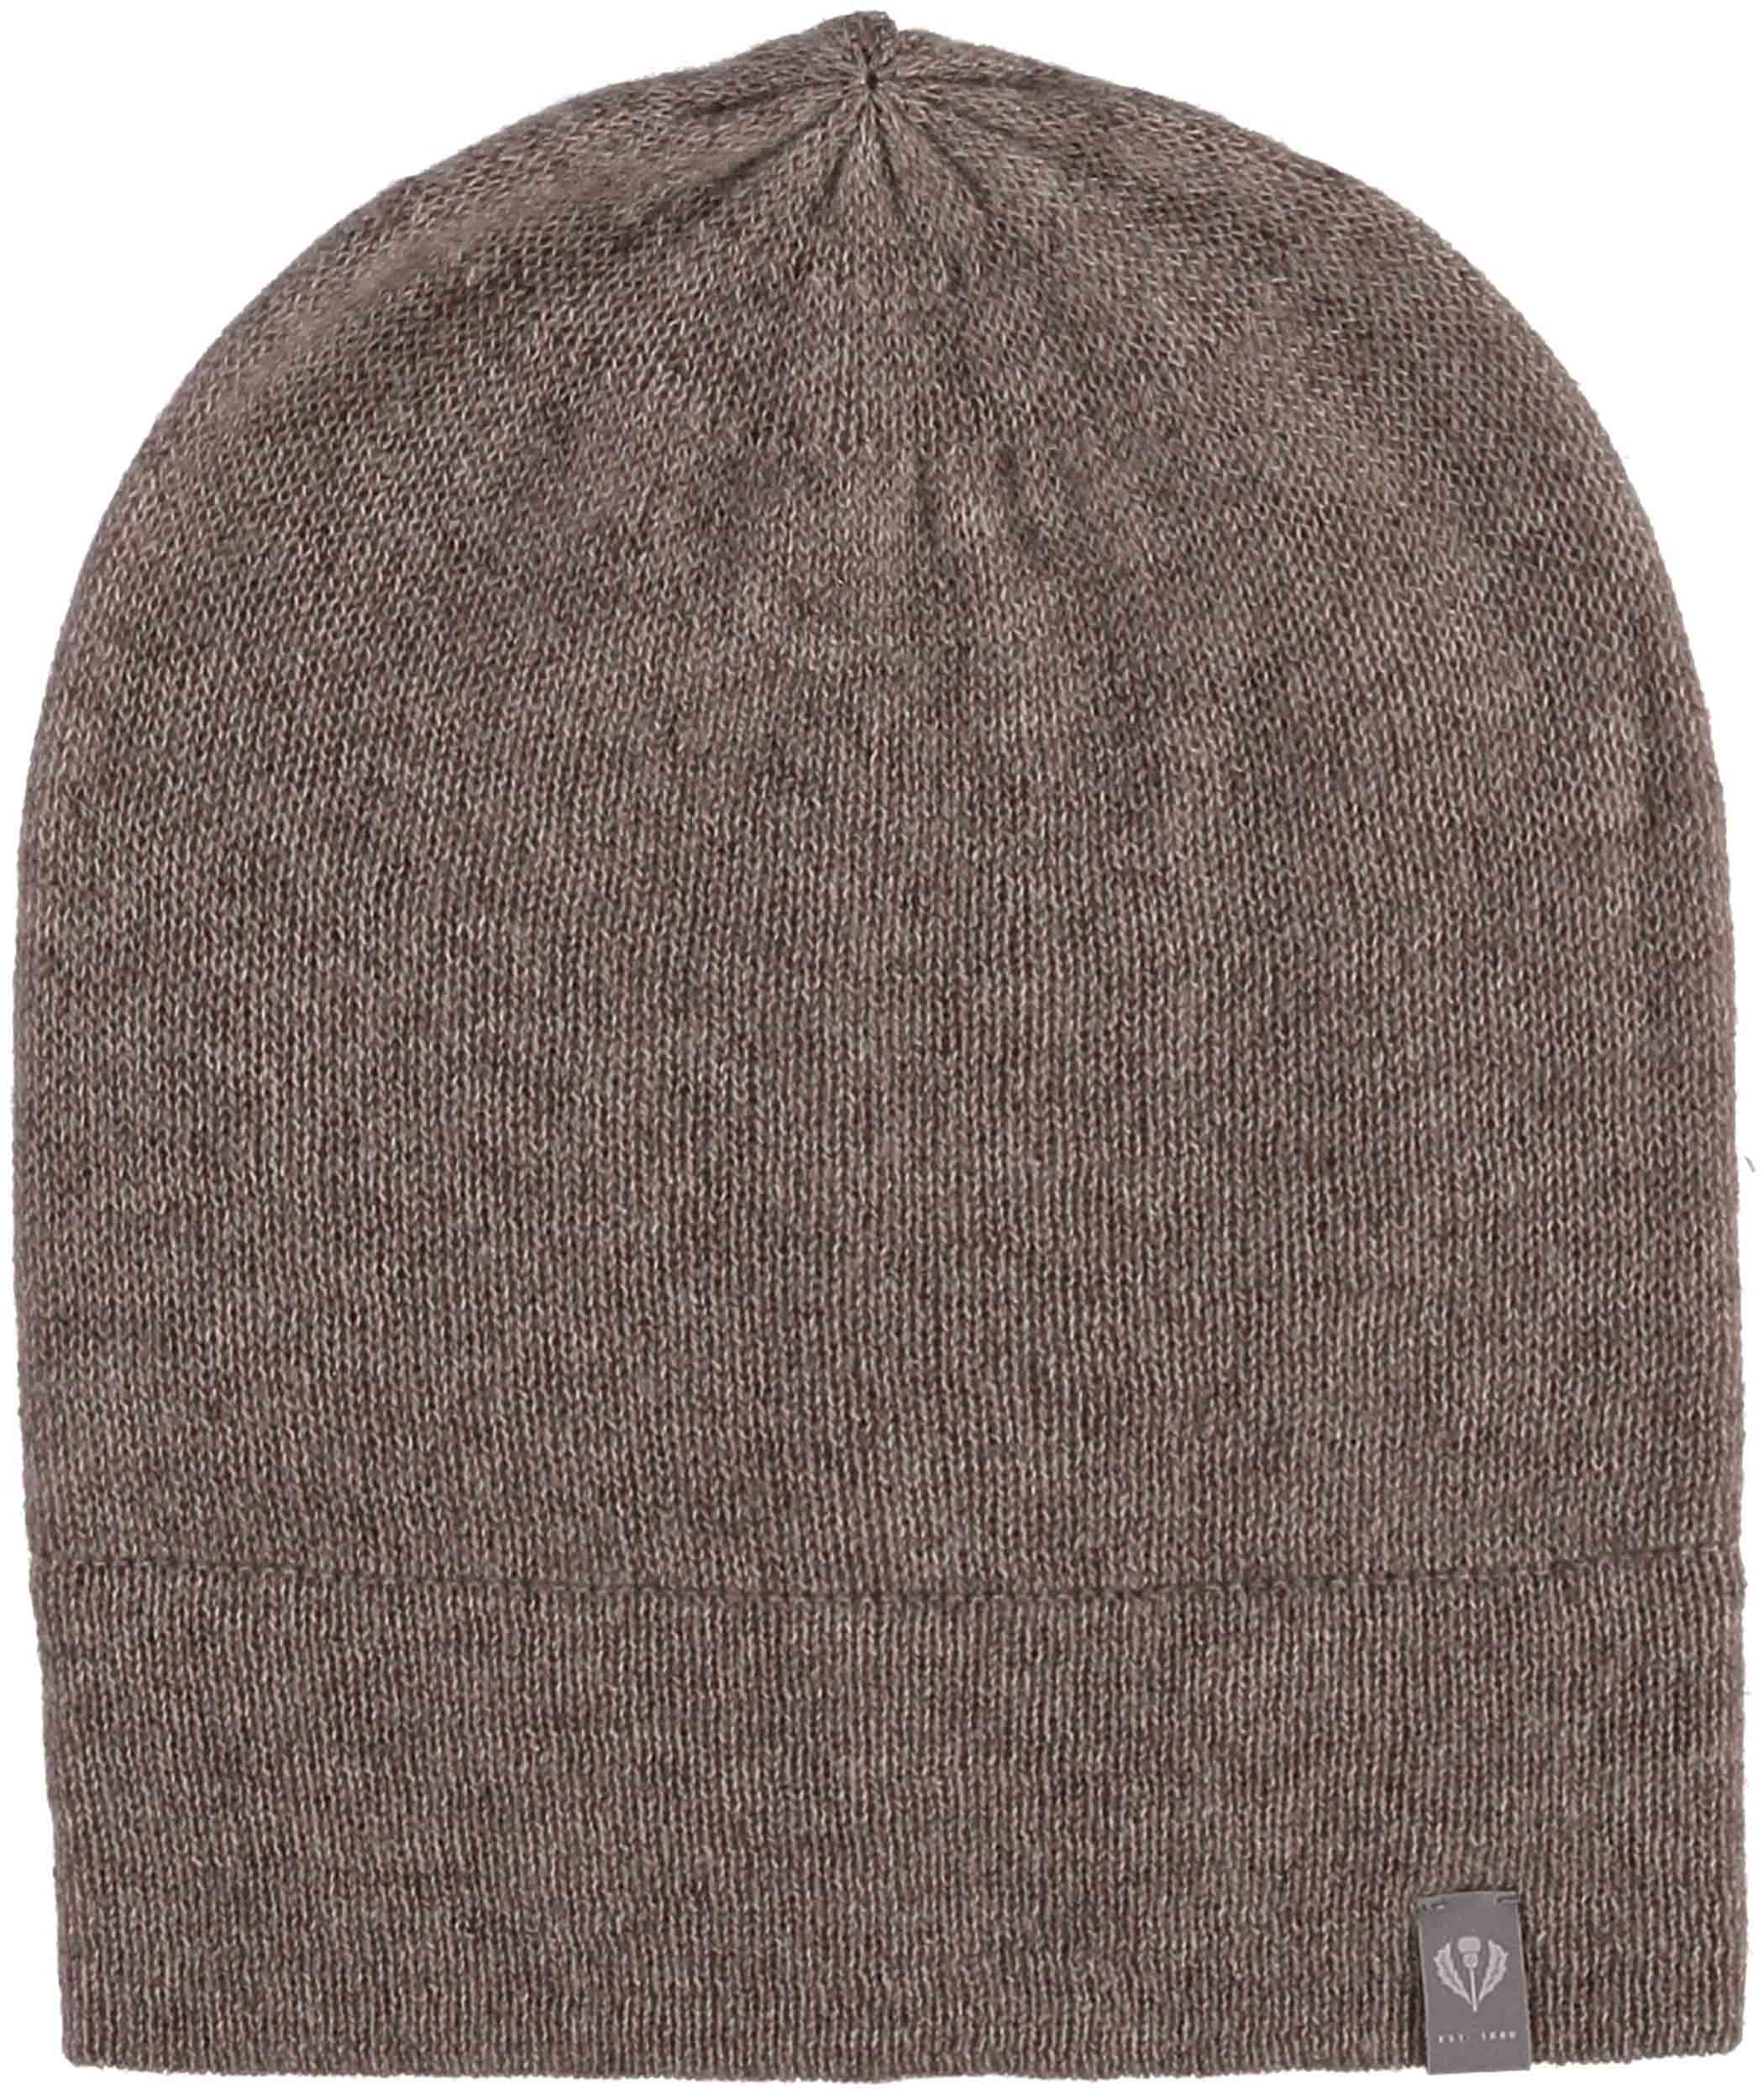 Signature Jersey Knit Cashmere Slouch Hat